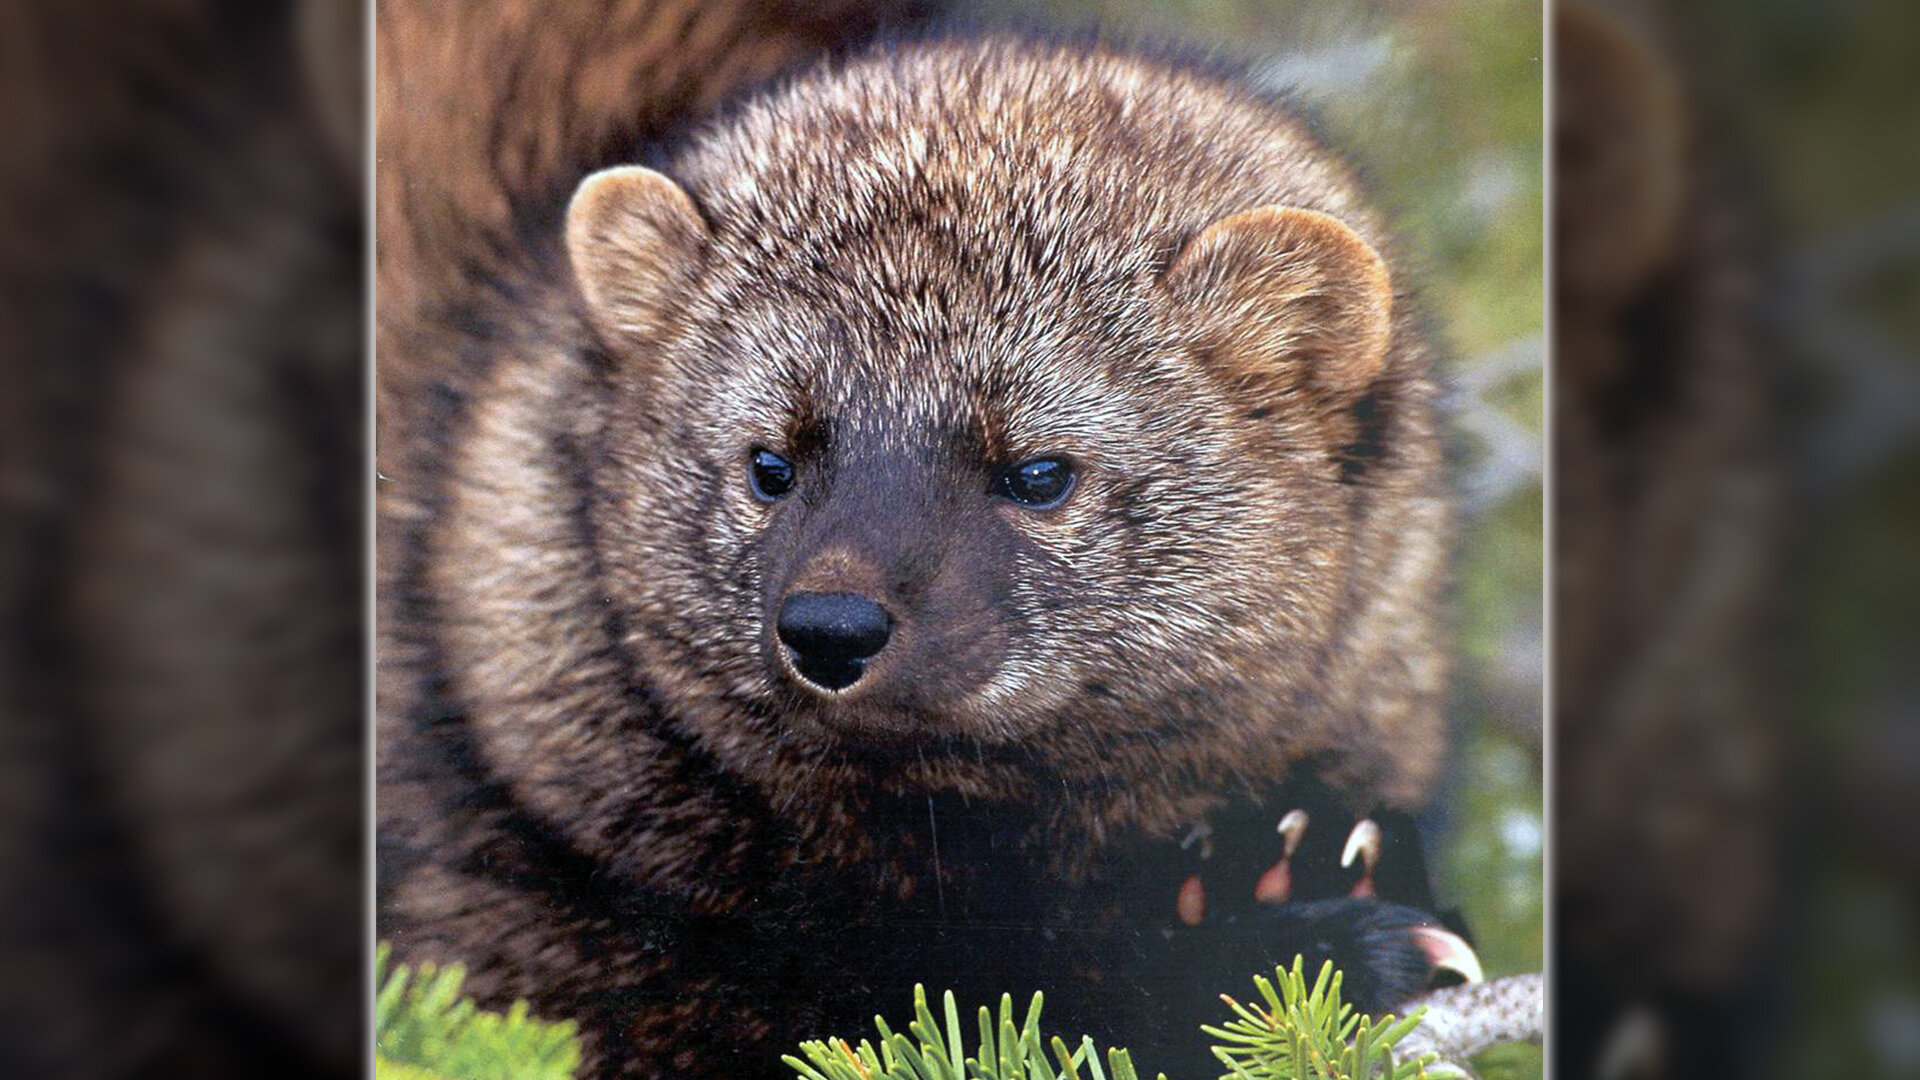 The Pacific fisher is expected to benefit from a conservation agreement between the Oregon Department of Forestry and U.S. Fish & Wildlife Service. (Photo courtesy USFWS)